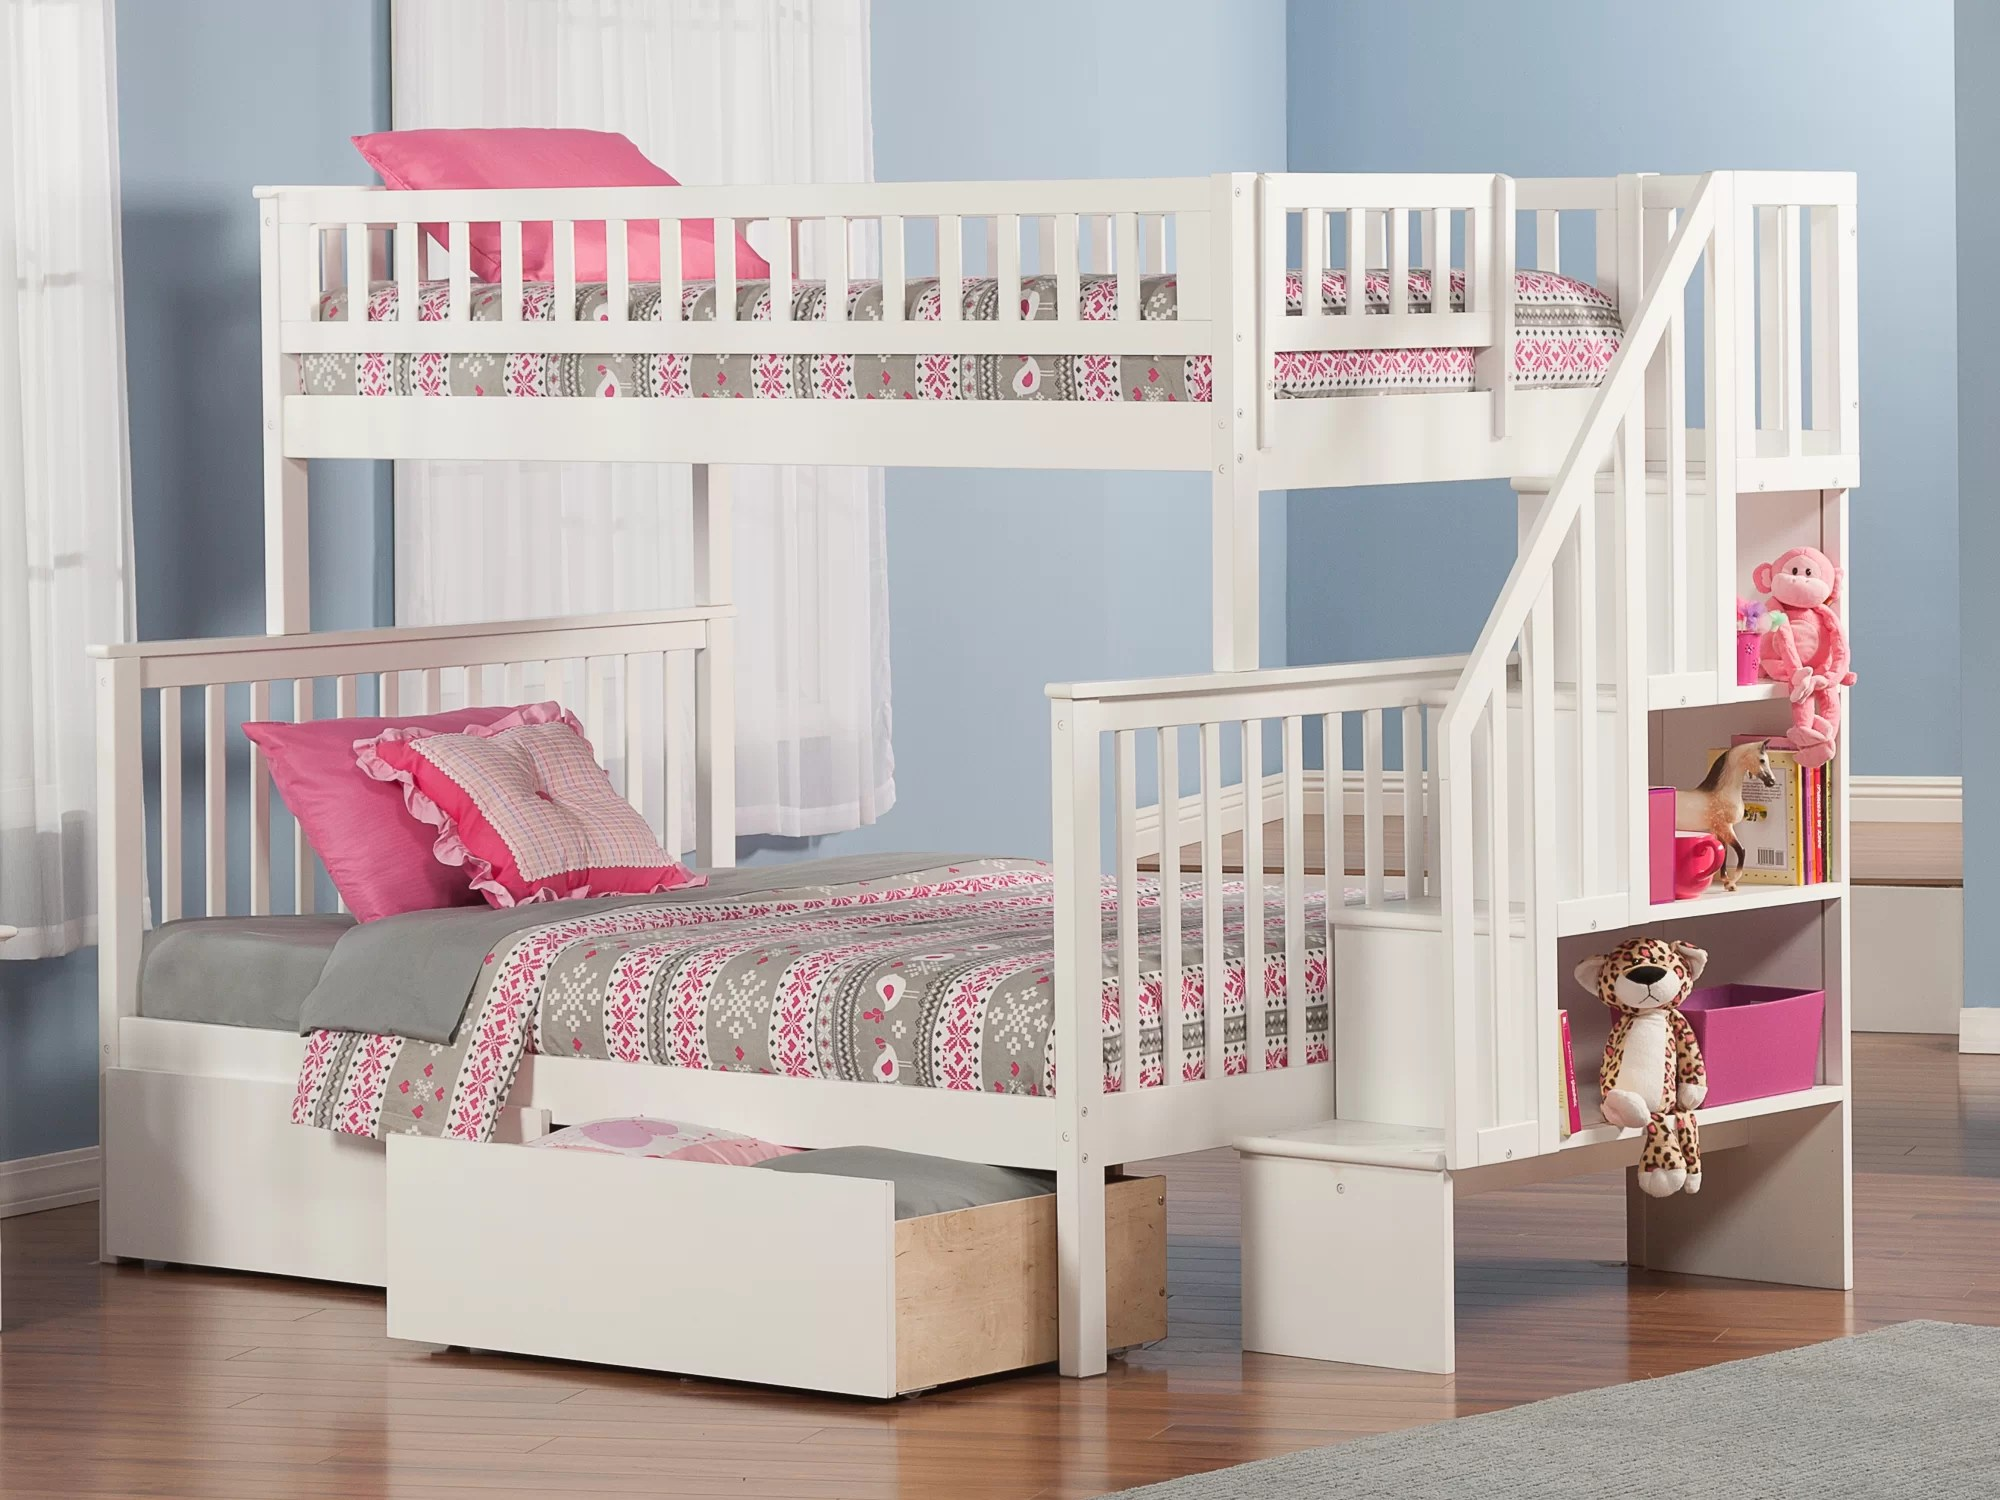 Snooze Bunk Beds Shyann Bunk Bed With Storage